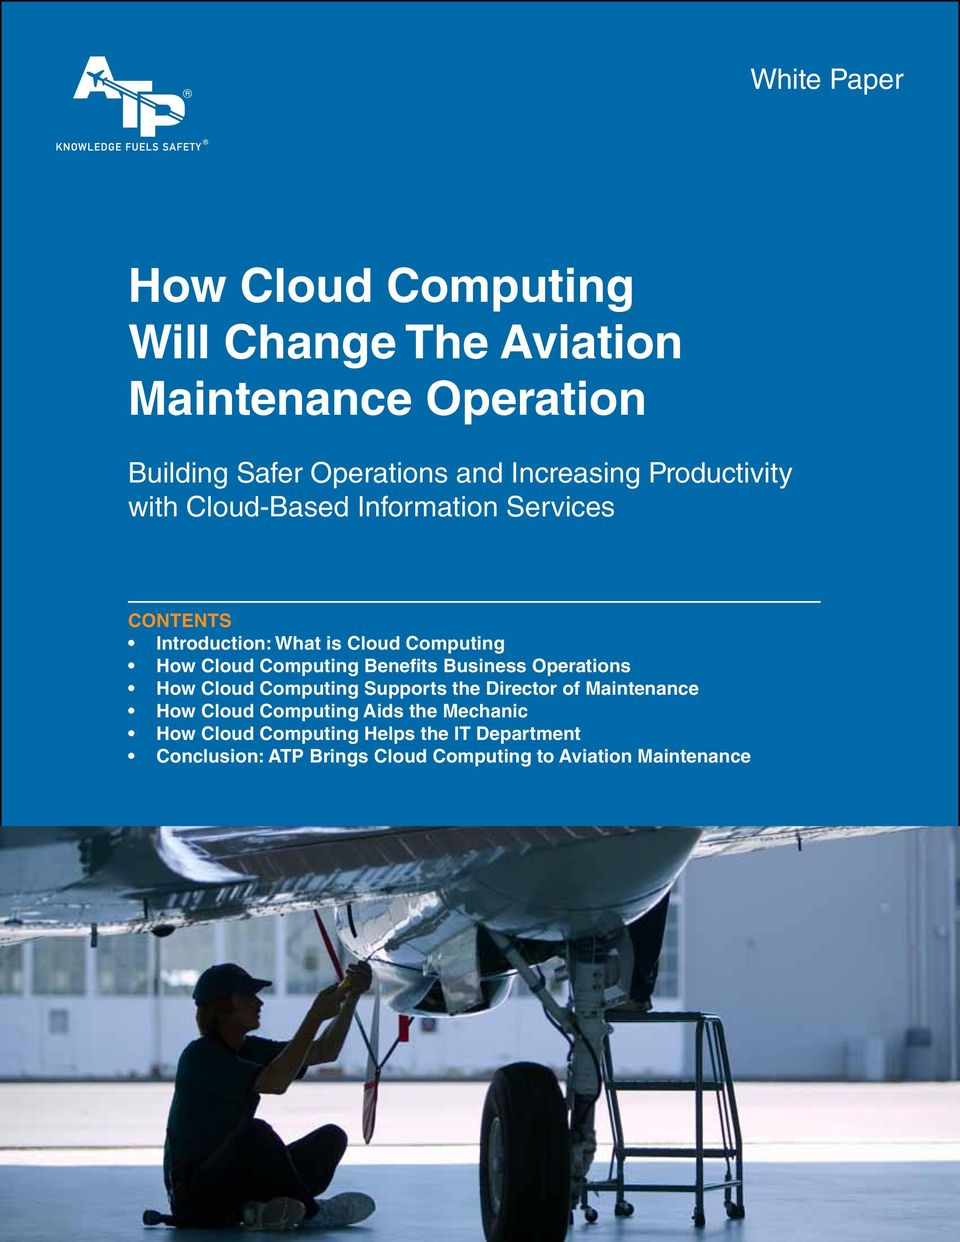 Cloud Computing Benefits Business Operations How Cloud Computing Supports the Director of Maintenance How Cloud